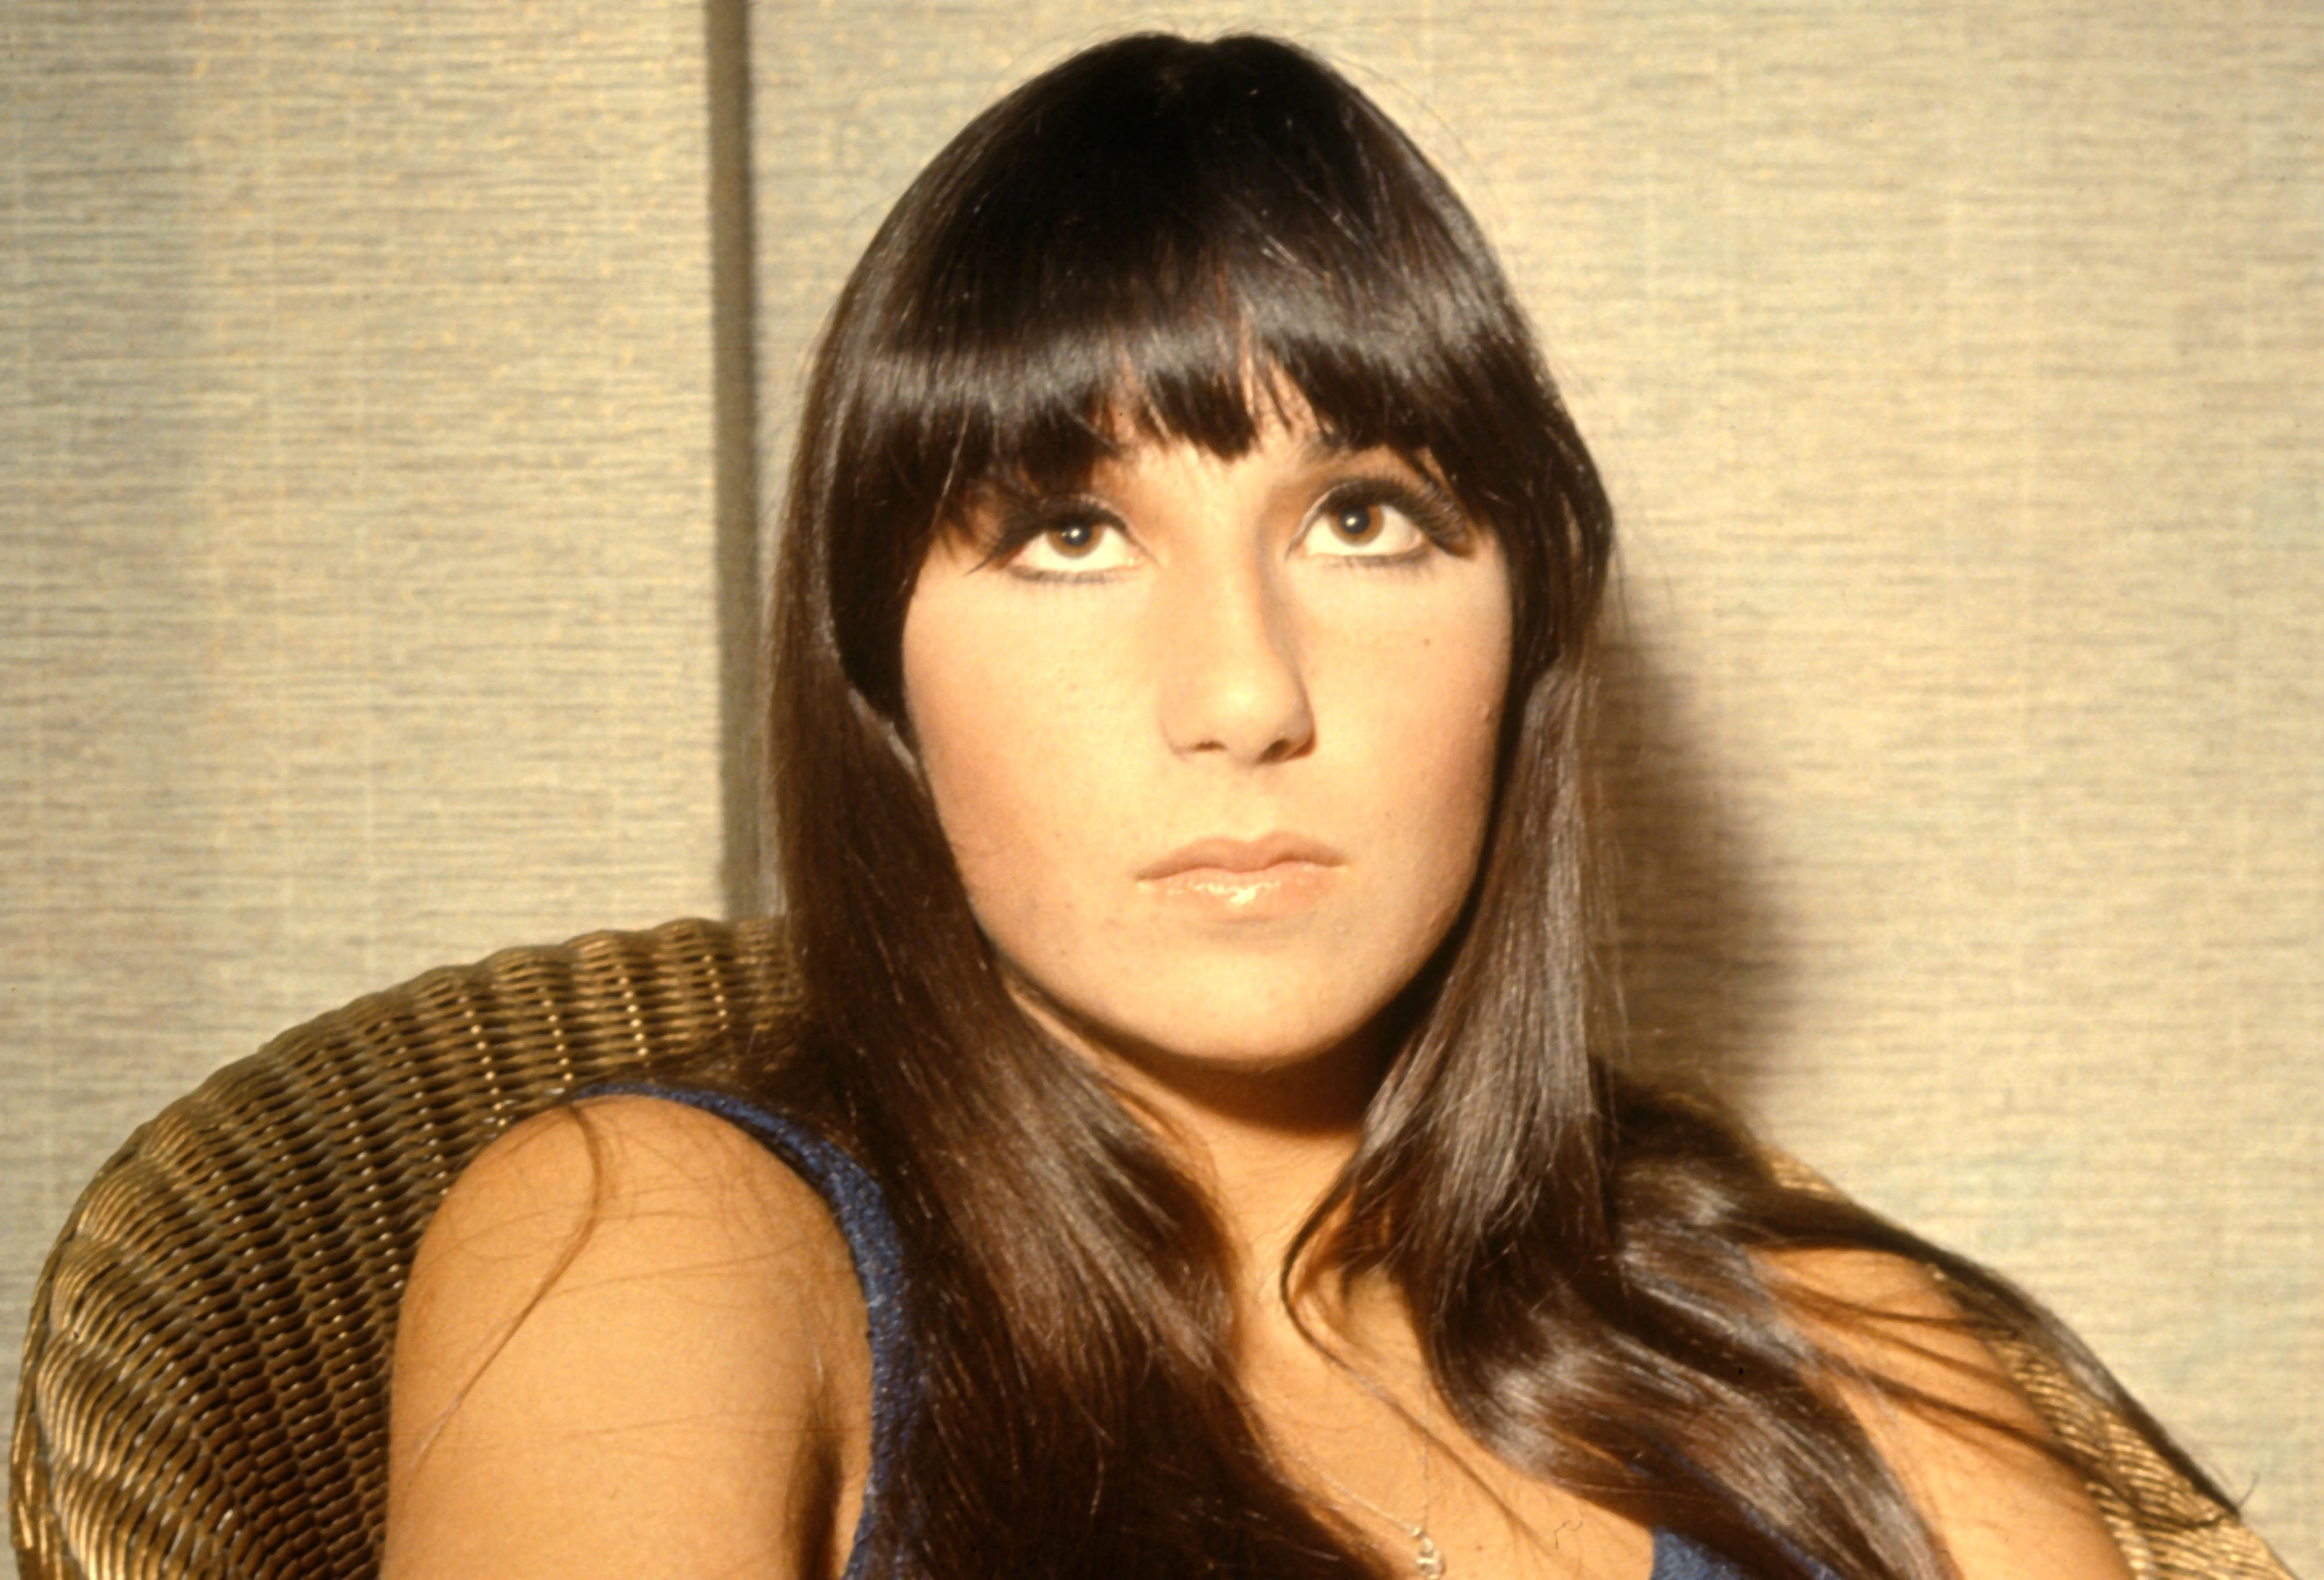 Image Source: Getty Images/Cher as a young woman